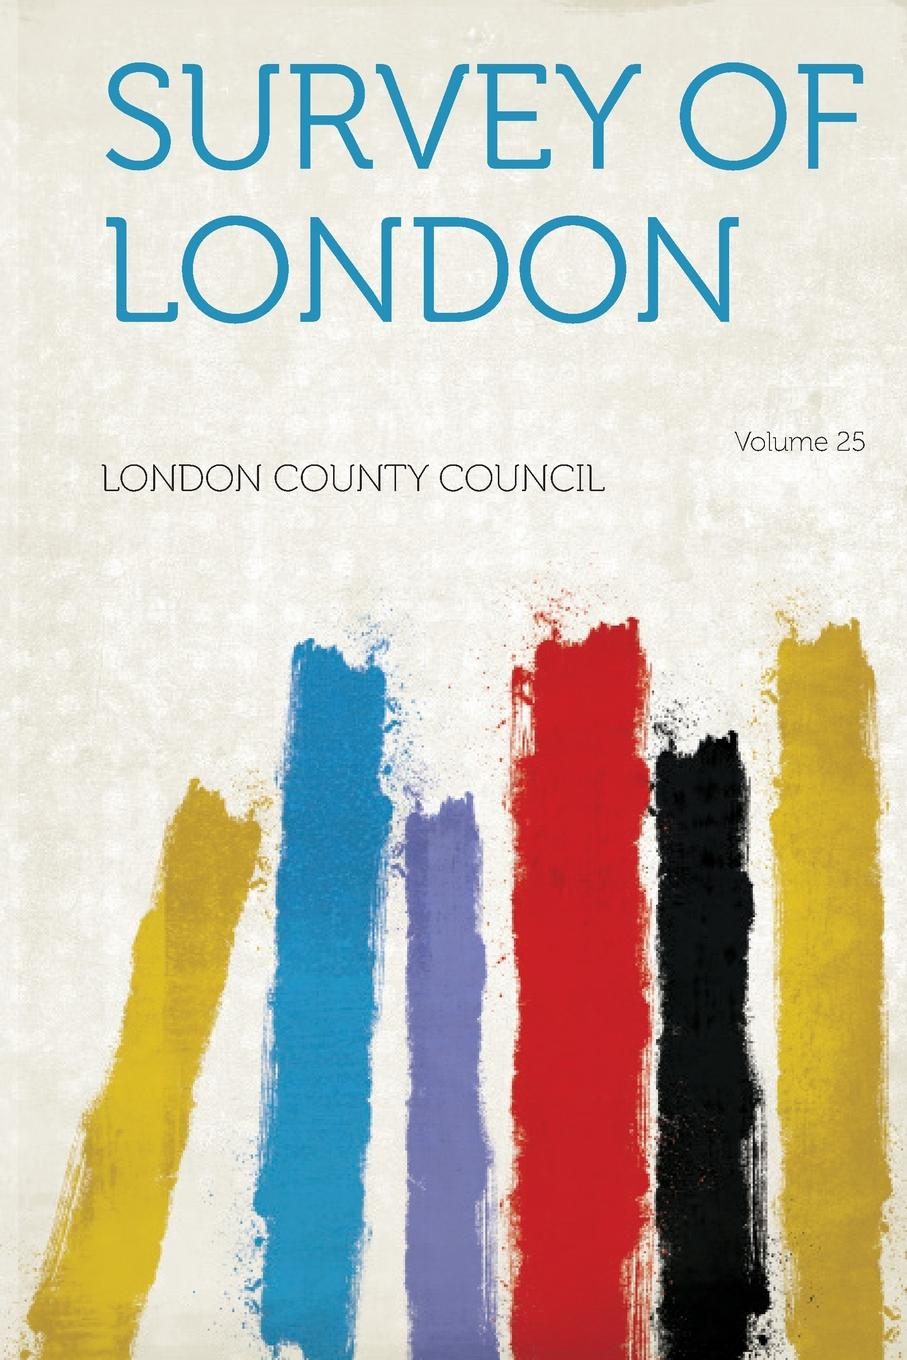 London County Council Survey of London Volume 25